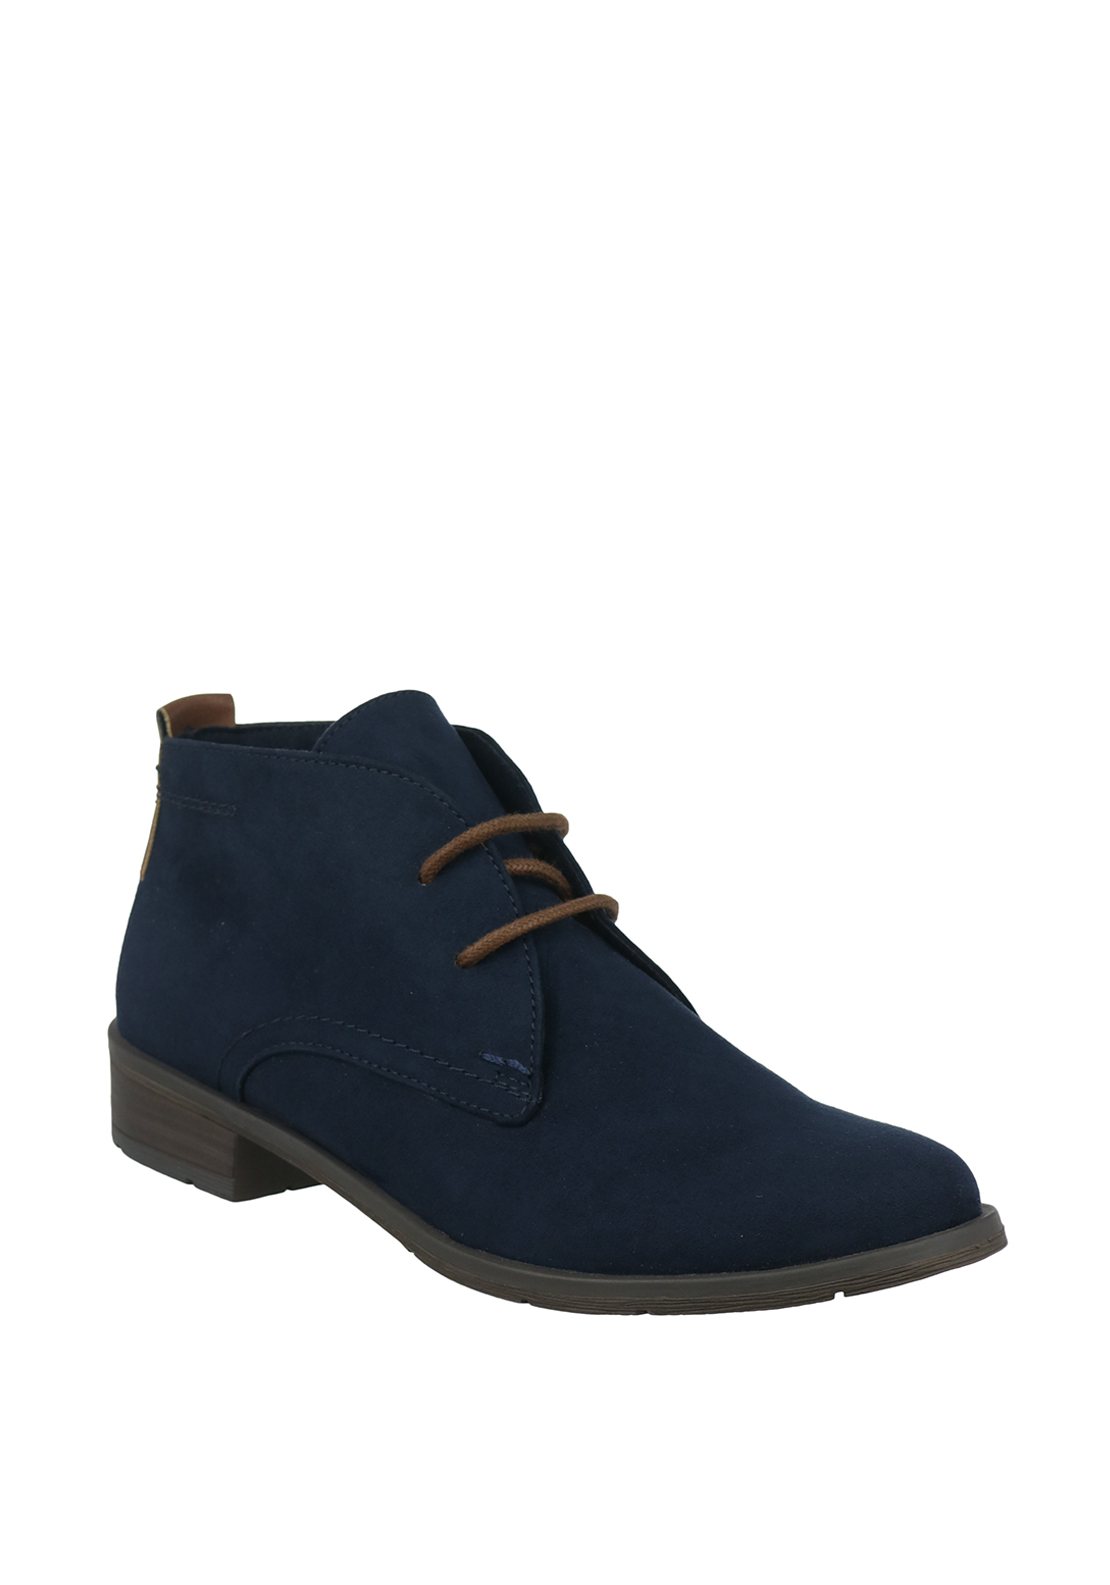 Marco Tozzi Faux Suede Dessert Boots, Navy